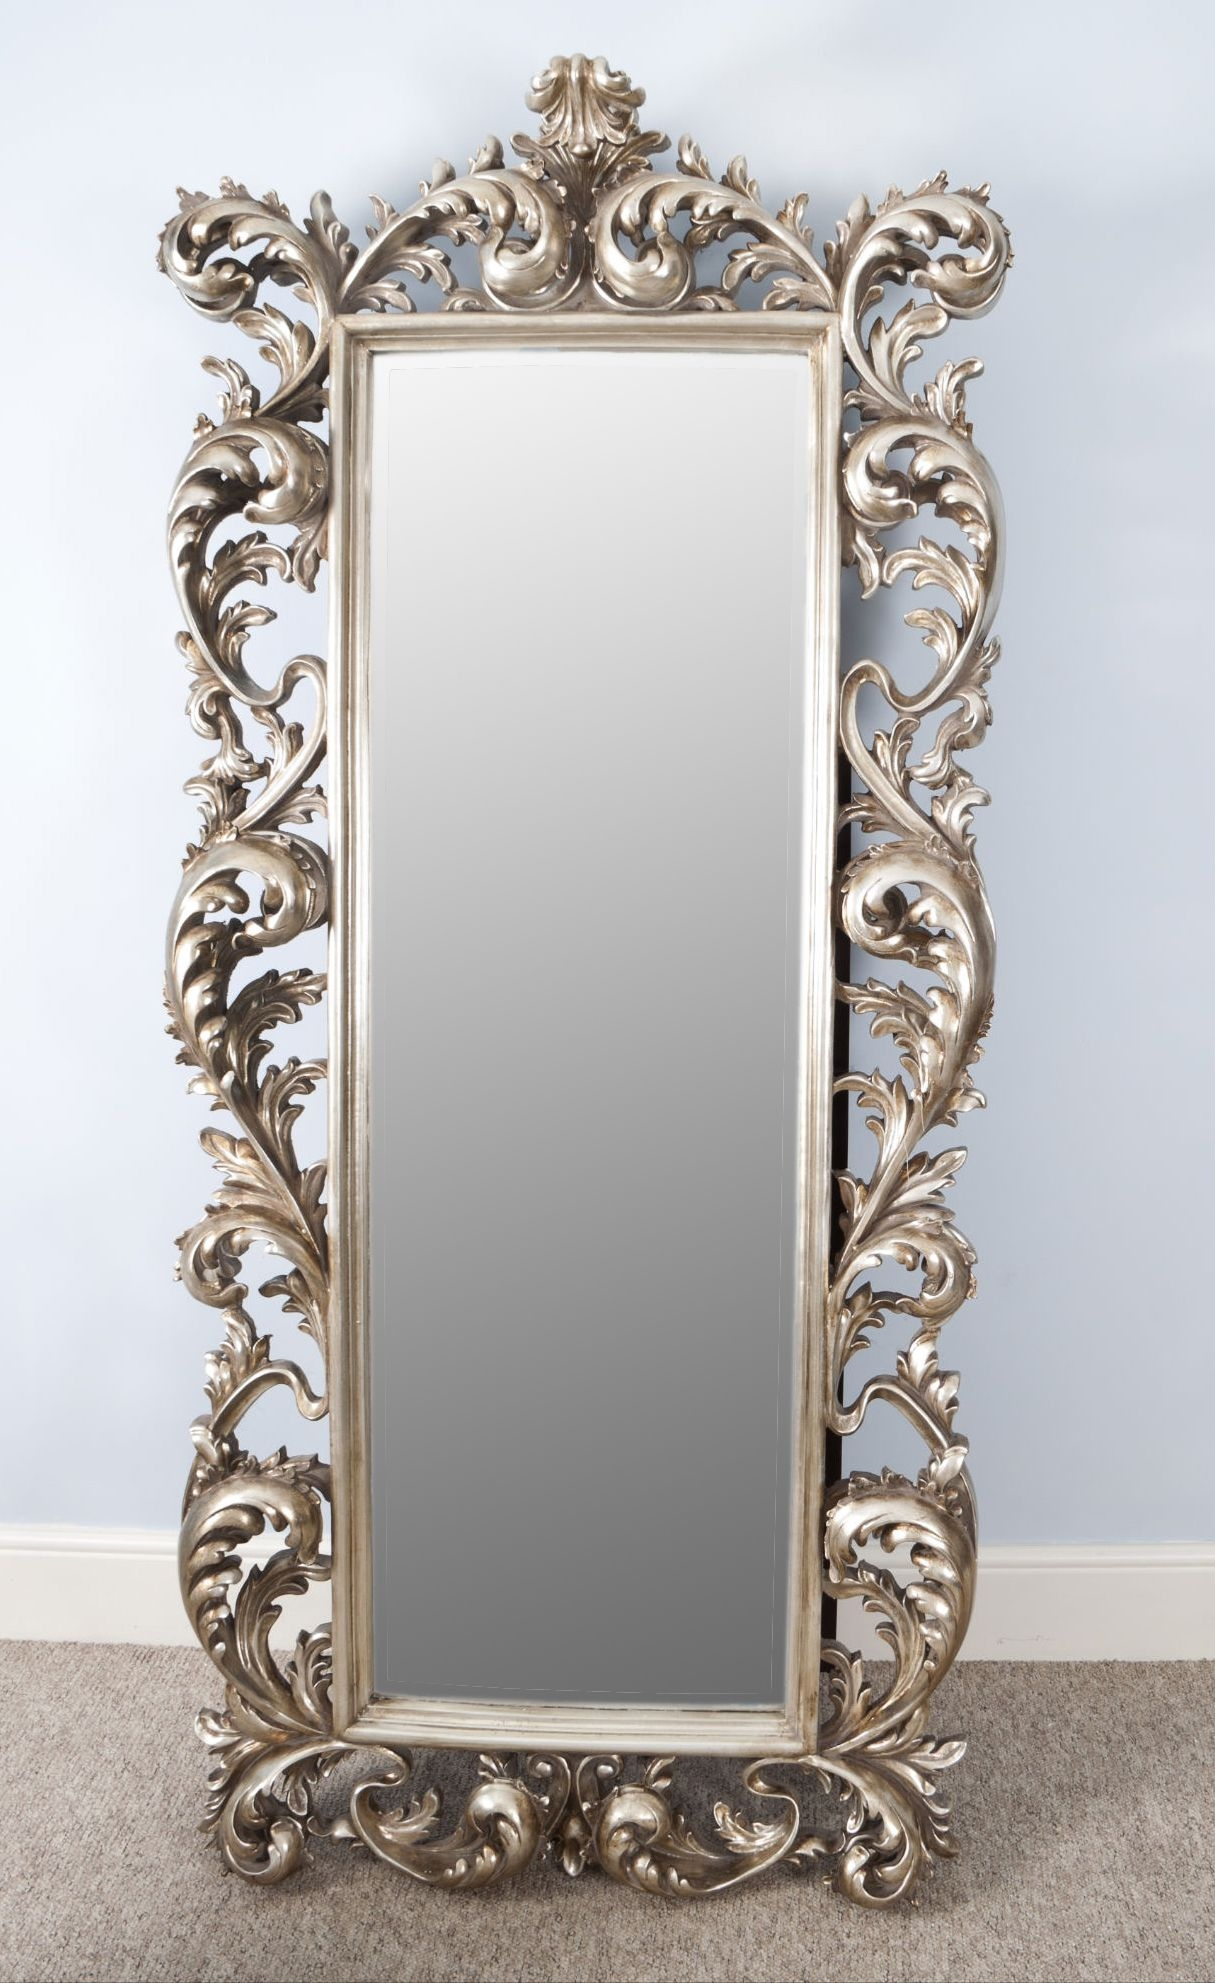 Classic Impression On Antique Wall Mirrors Vwho For Antique Full Length Mirror (Image 7 of 15)